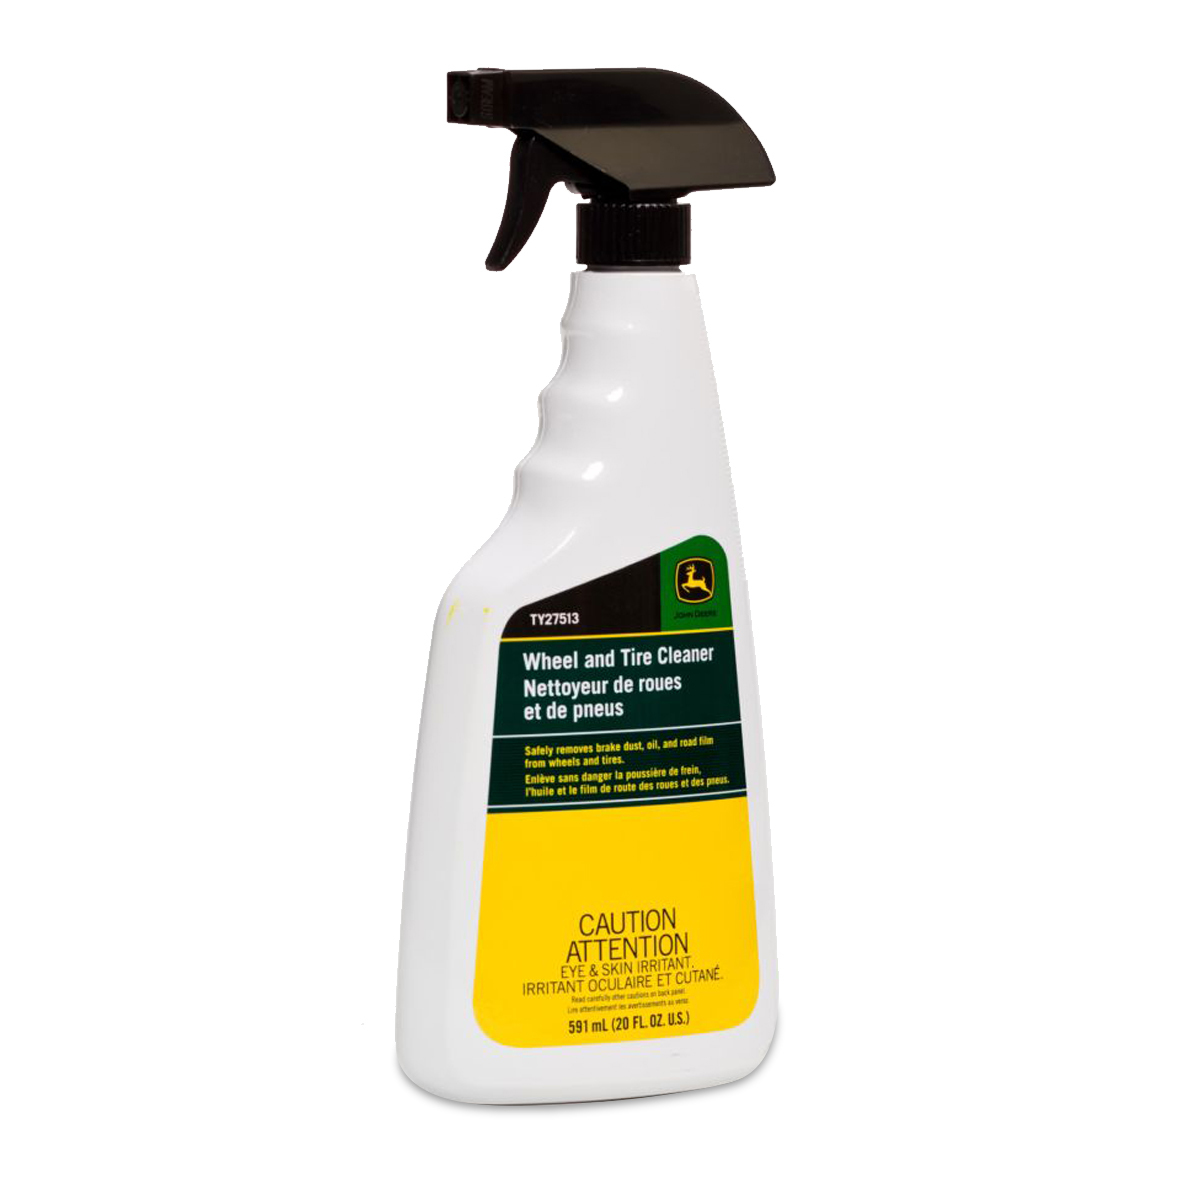 Wheel and Tire Cleaner, 20 oz